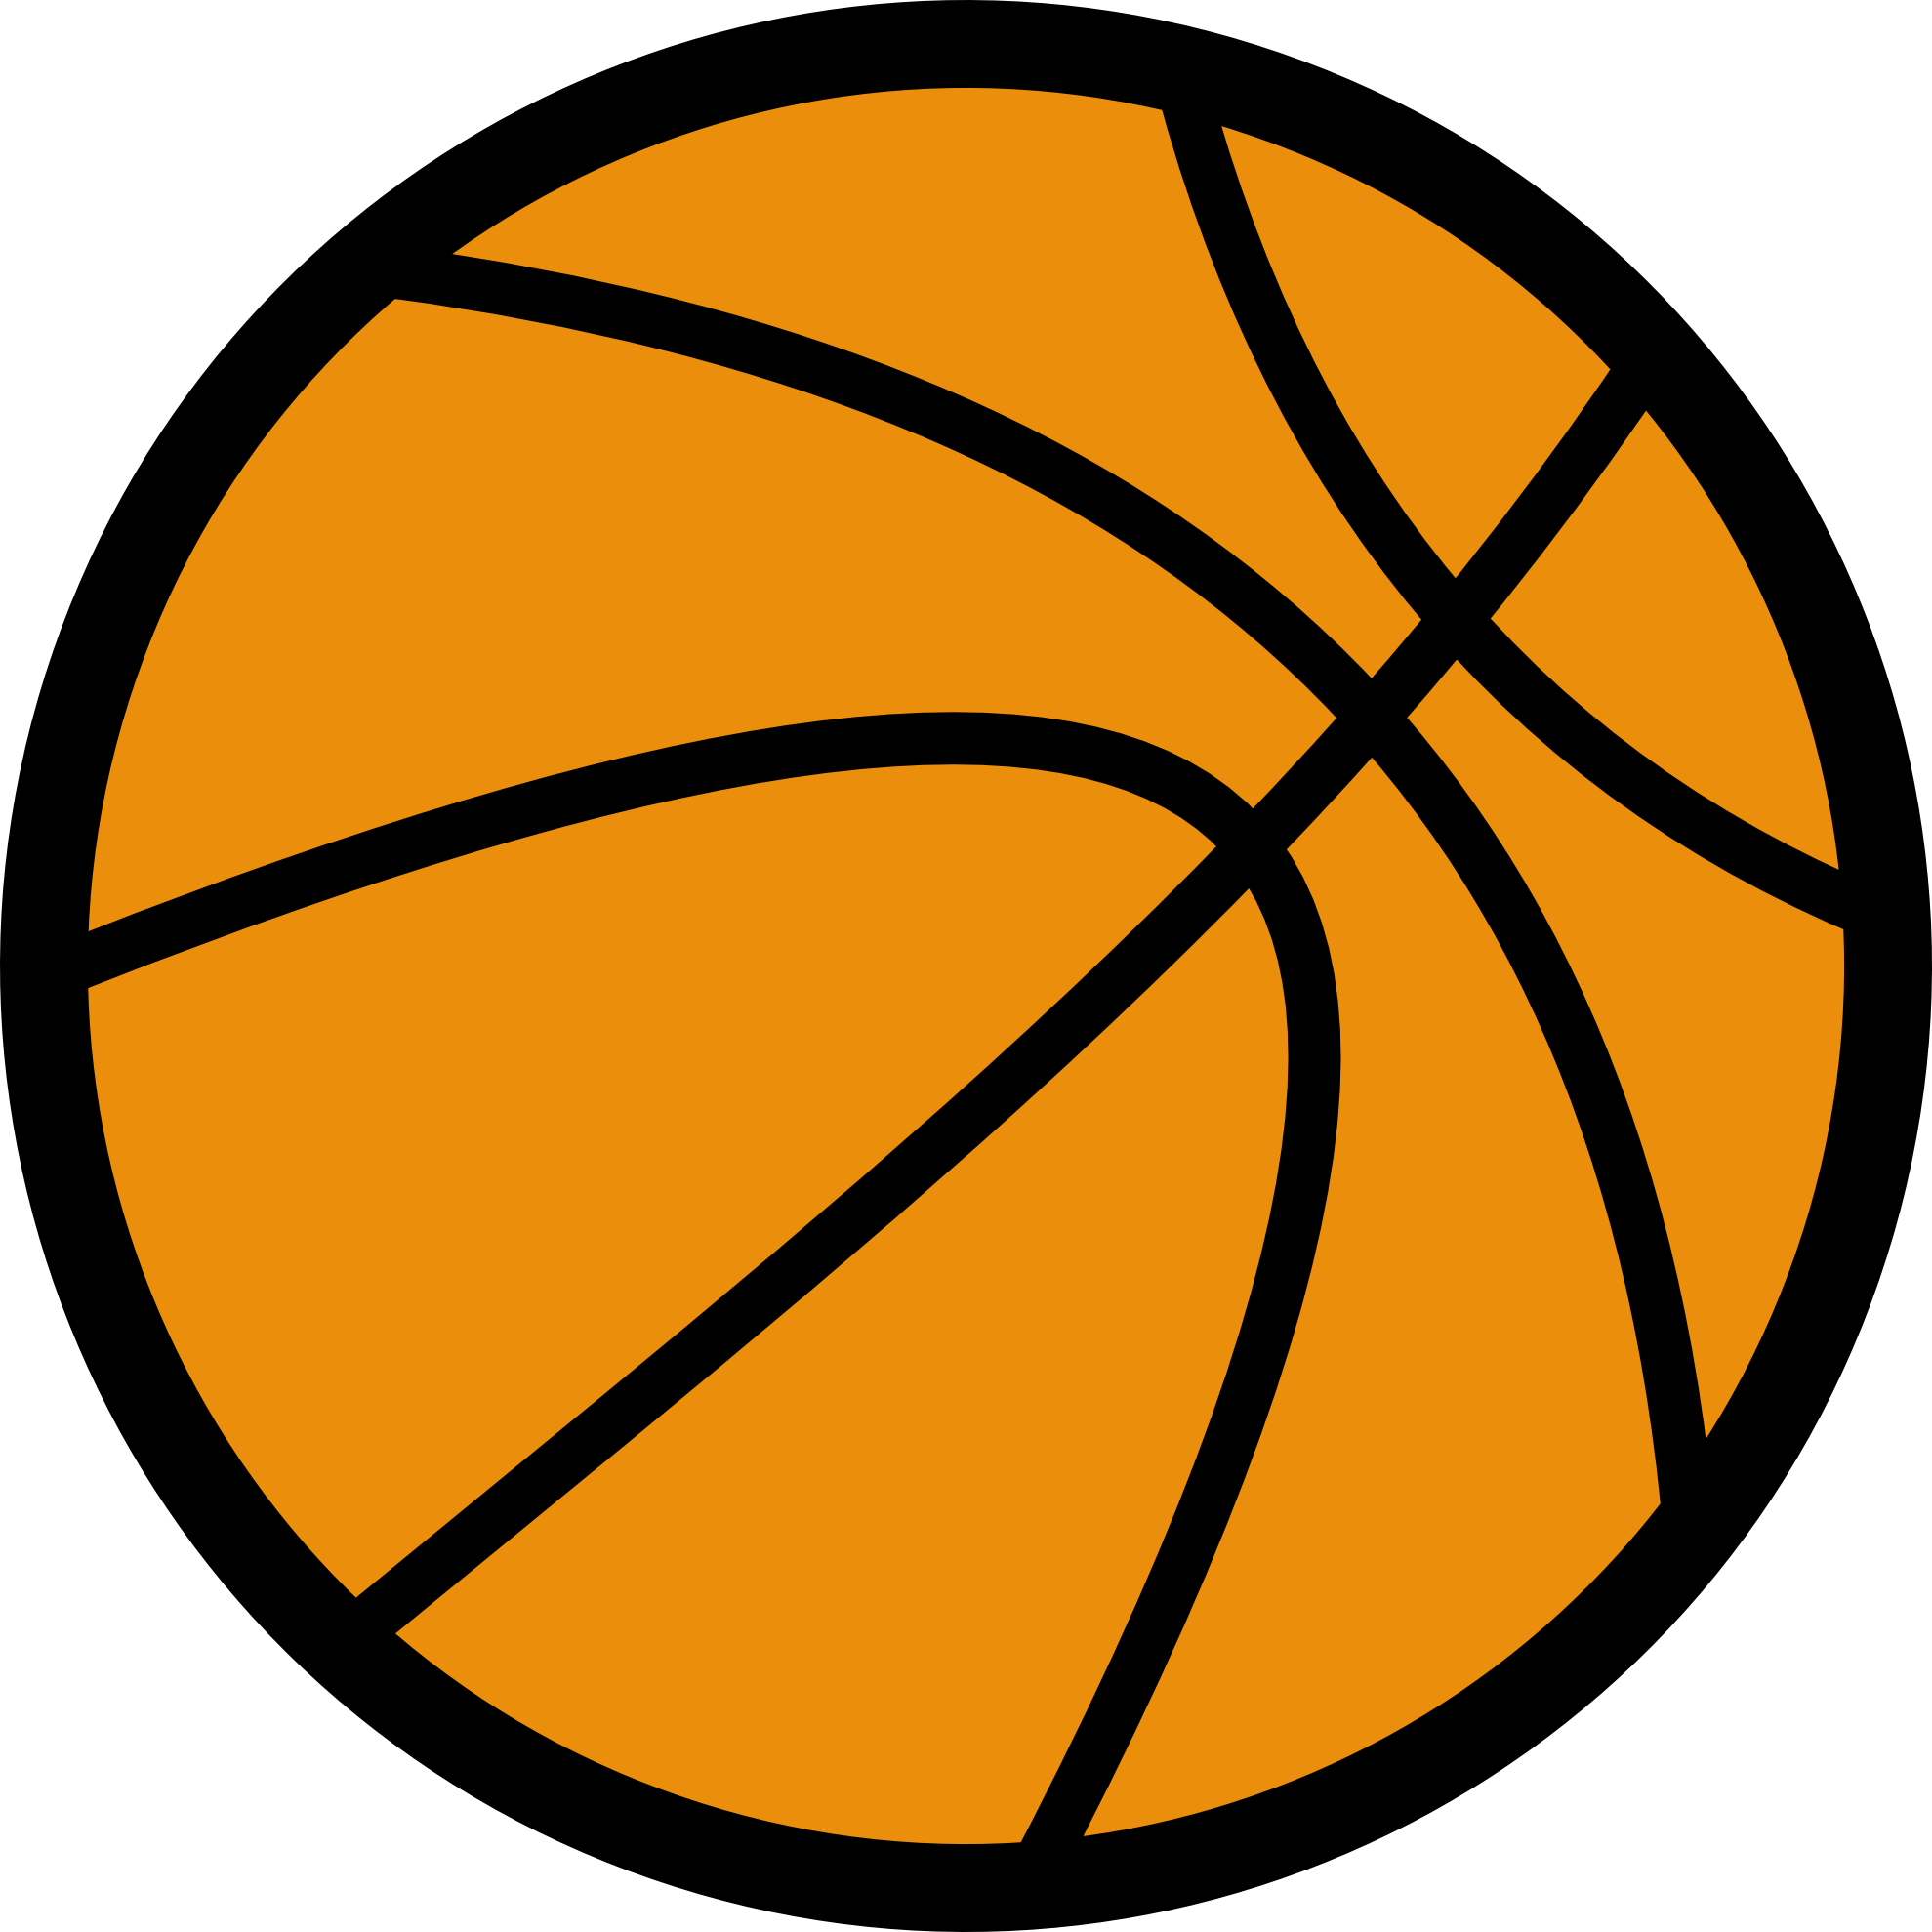 12 Free Basketball Vector Art Images